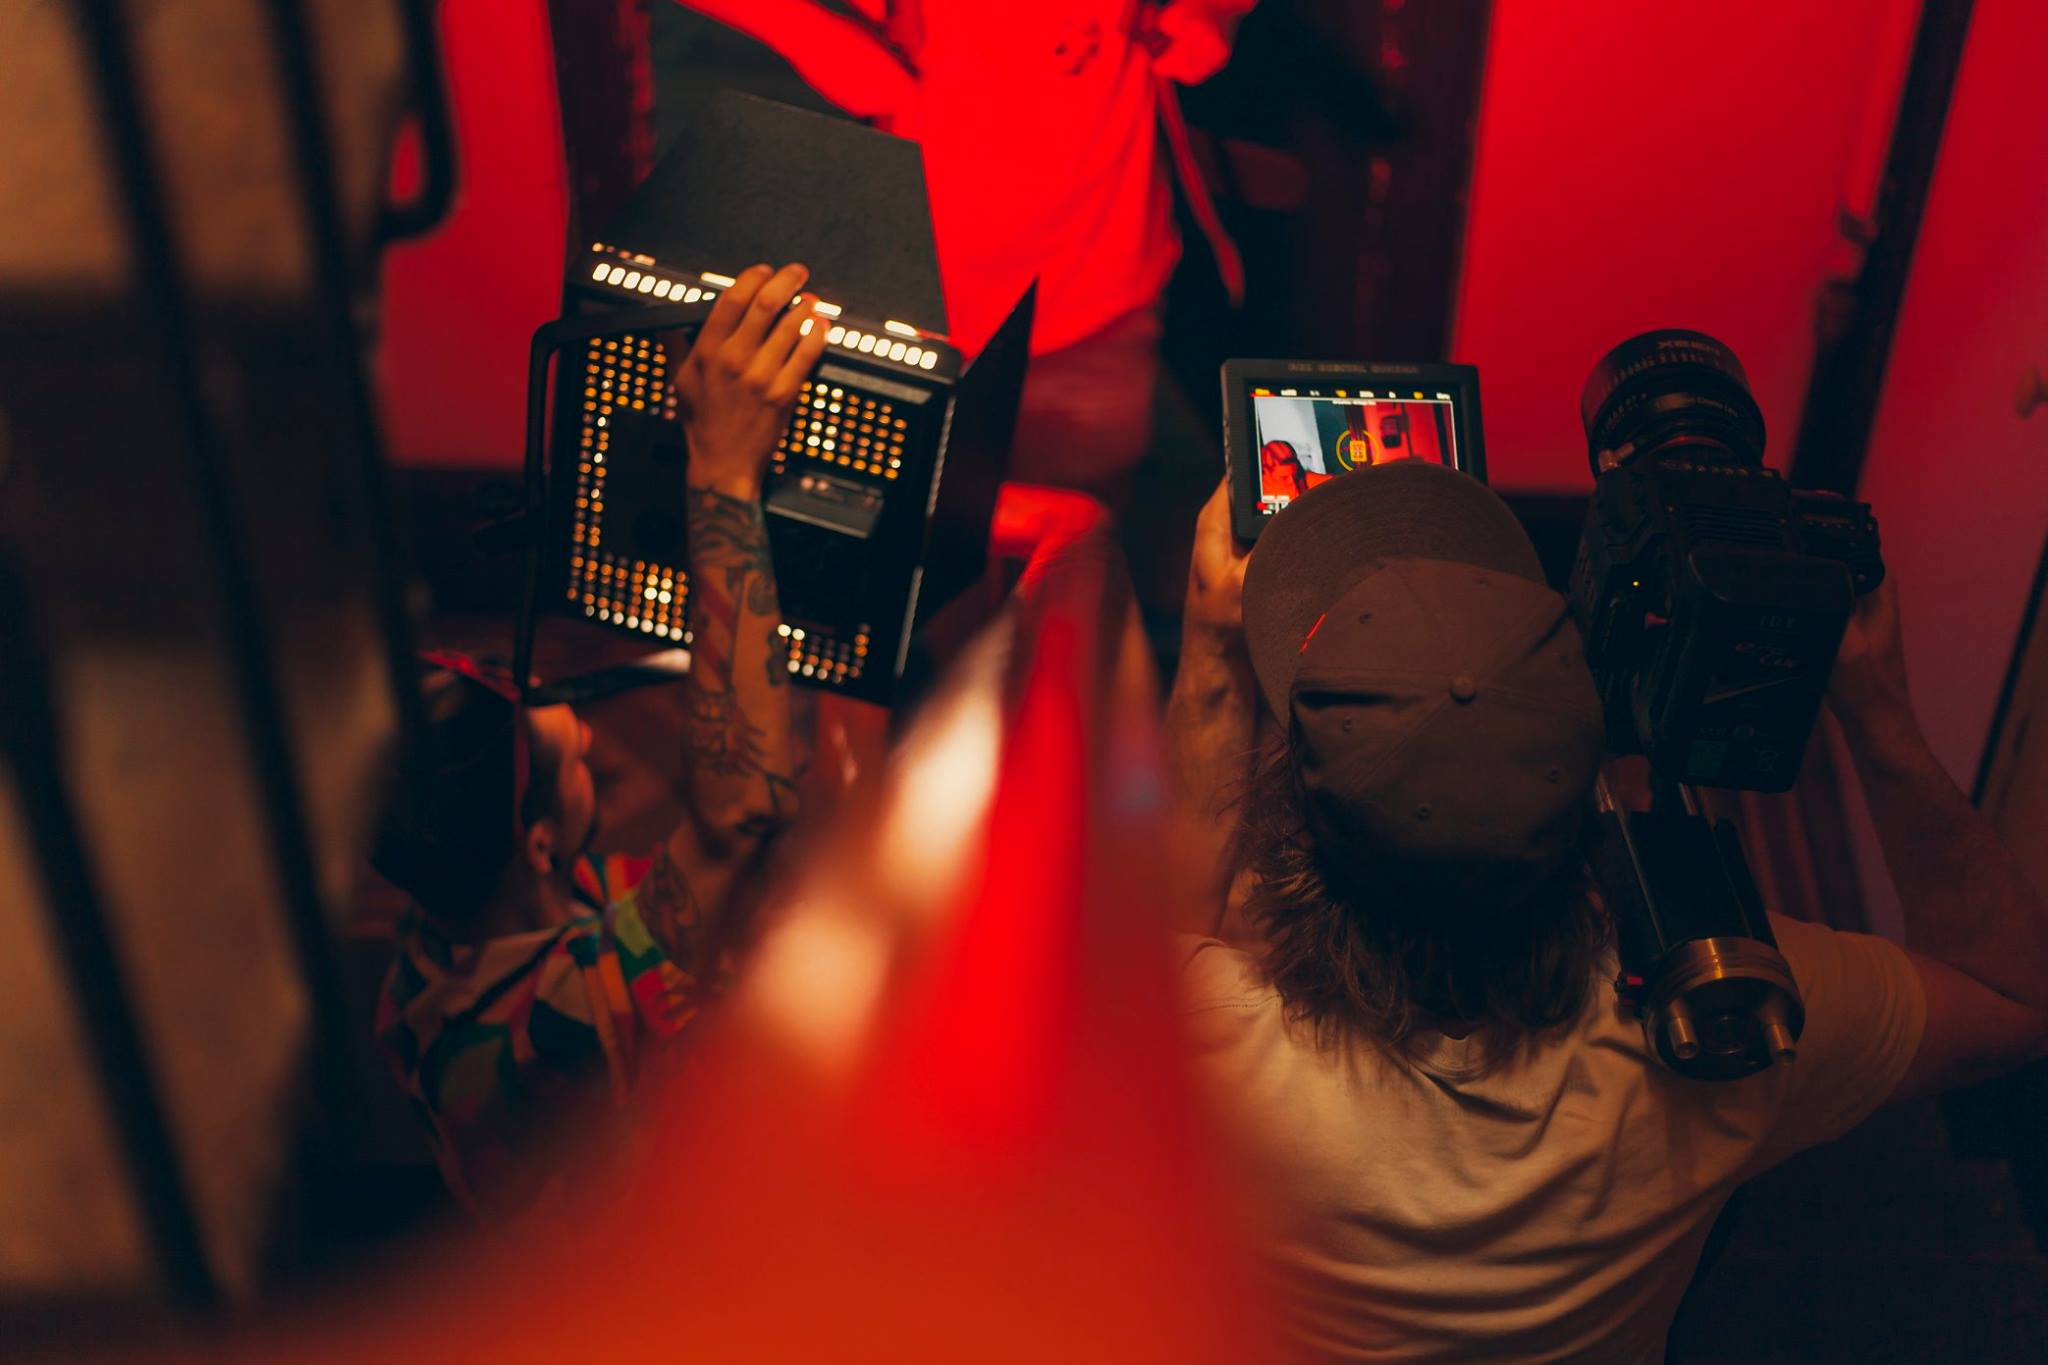 tournage krysalid clermont ferrand red epic led